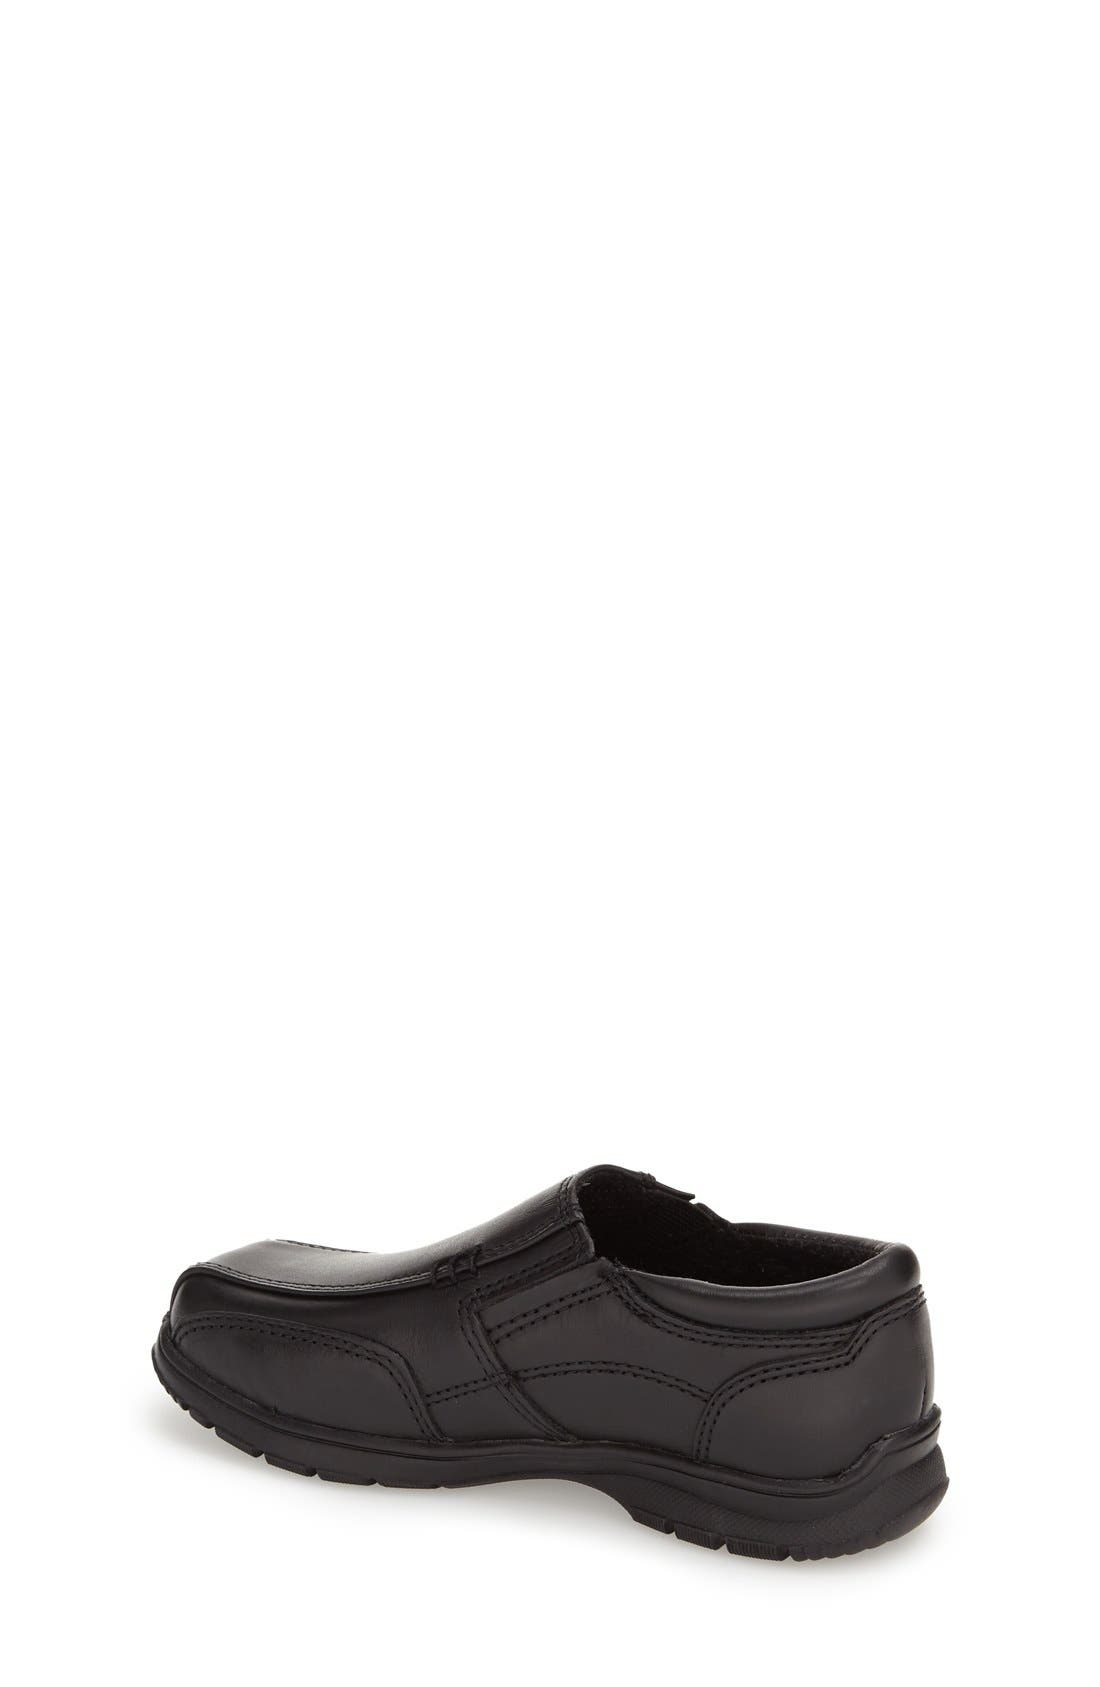 Reaction Kenneth Cole'Check N Check' Loafer,                             Alternate thumbnail 2, color,                             001